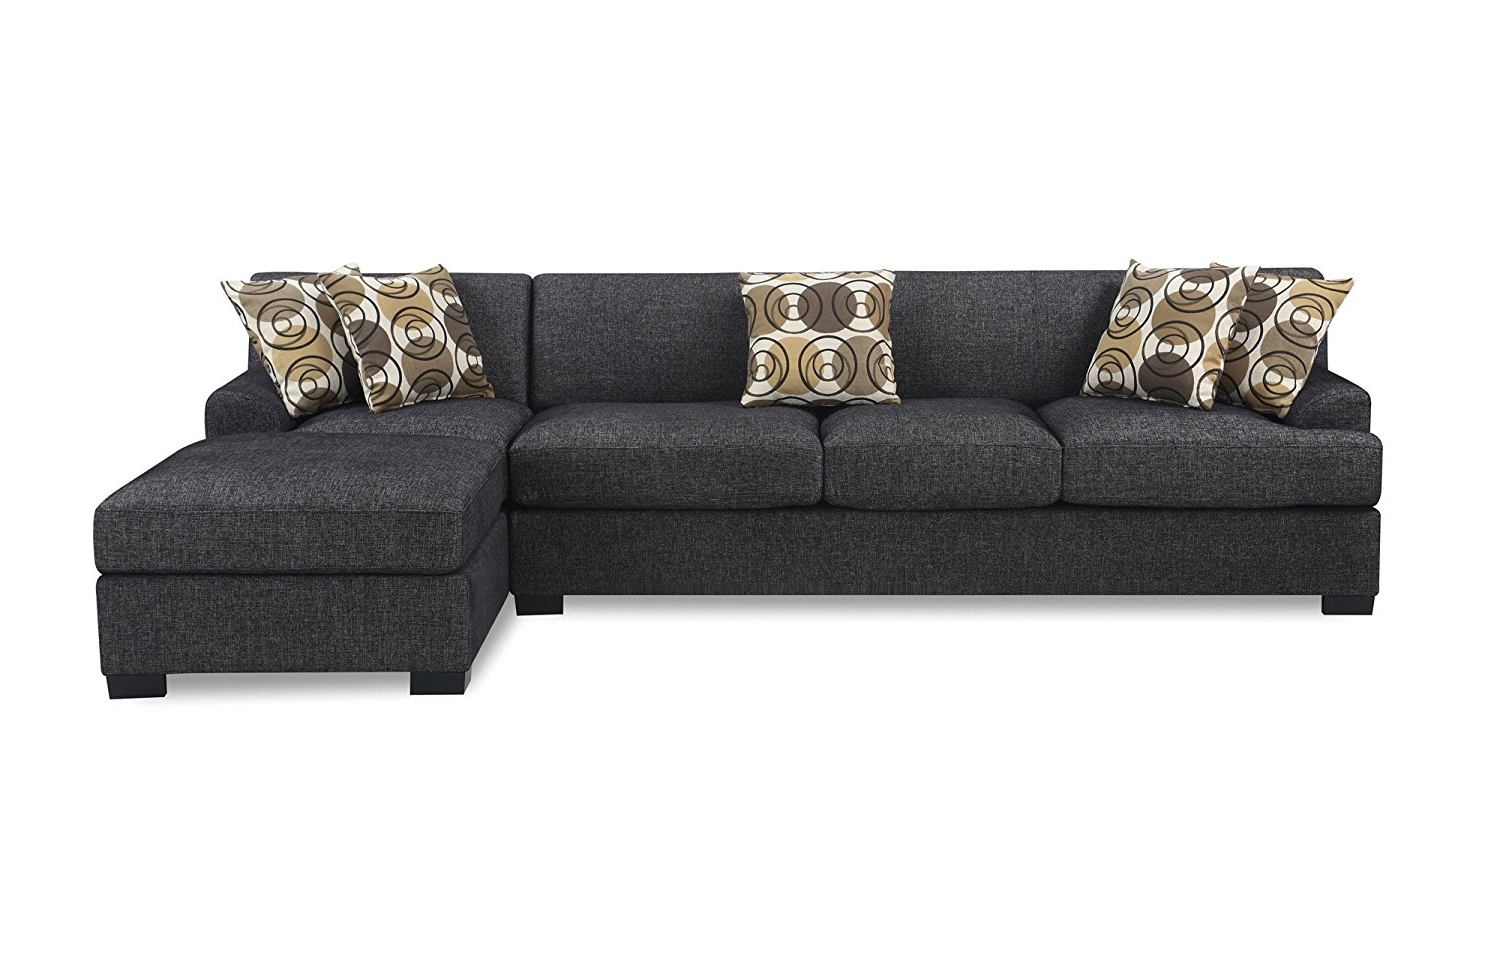 Chaise Sofas For Current Amazon: Bobkona Poundex Benford Collection Faux Linen Chaise (View 5 of 15)